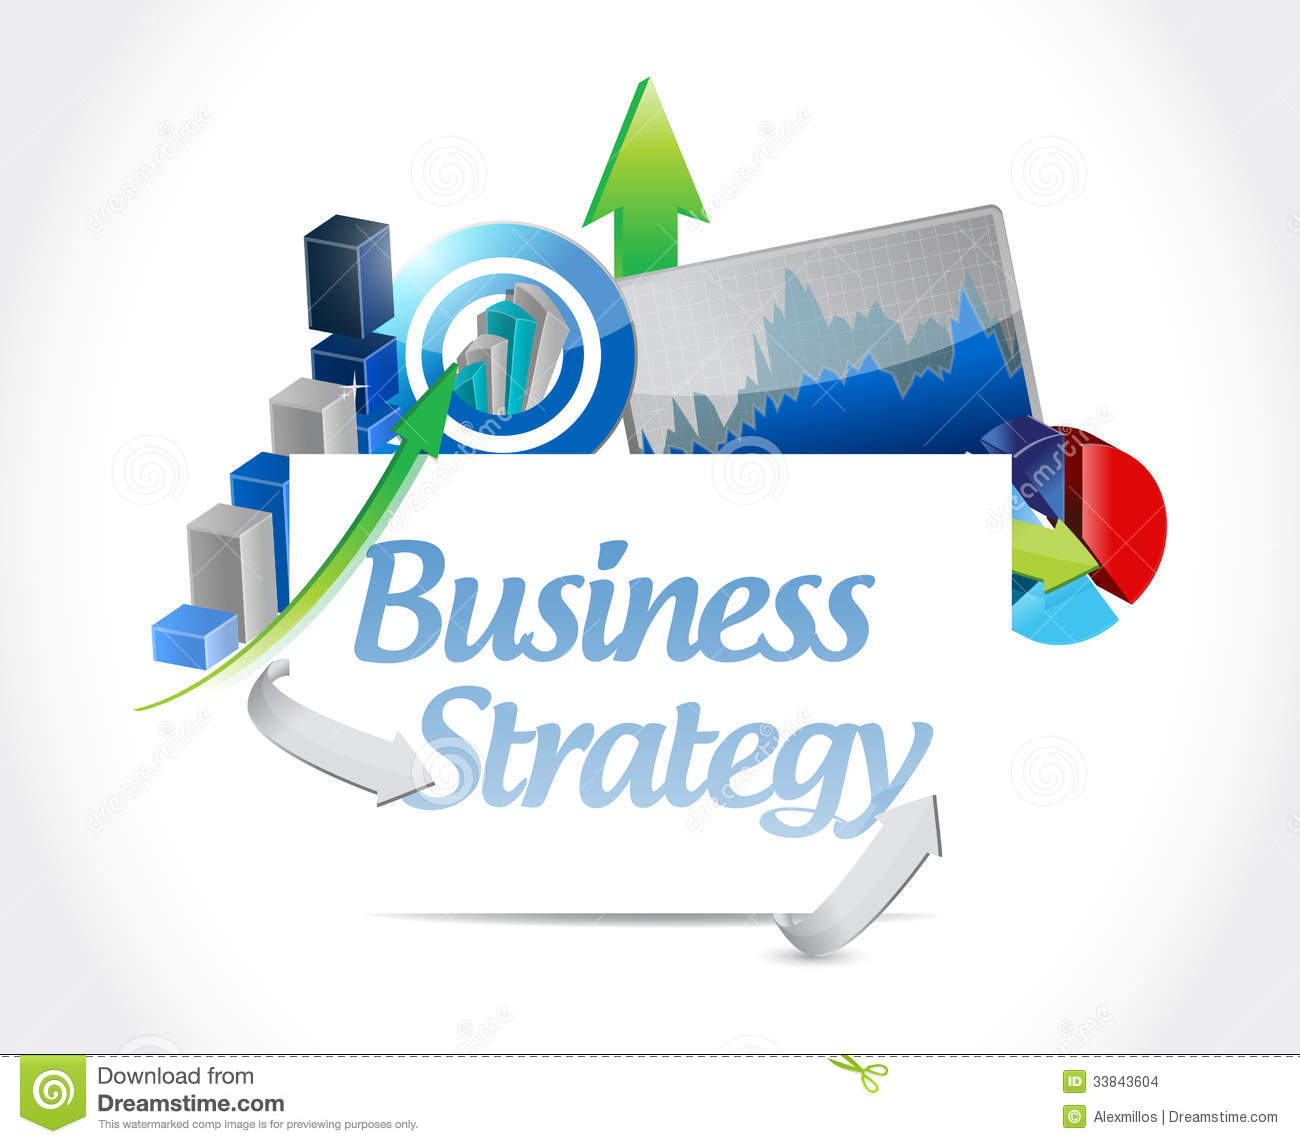 Business strategy concept sign illustration design stock images image 33843604 - Custom signs for home decor concept ...